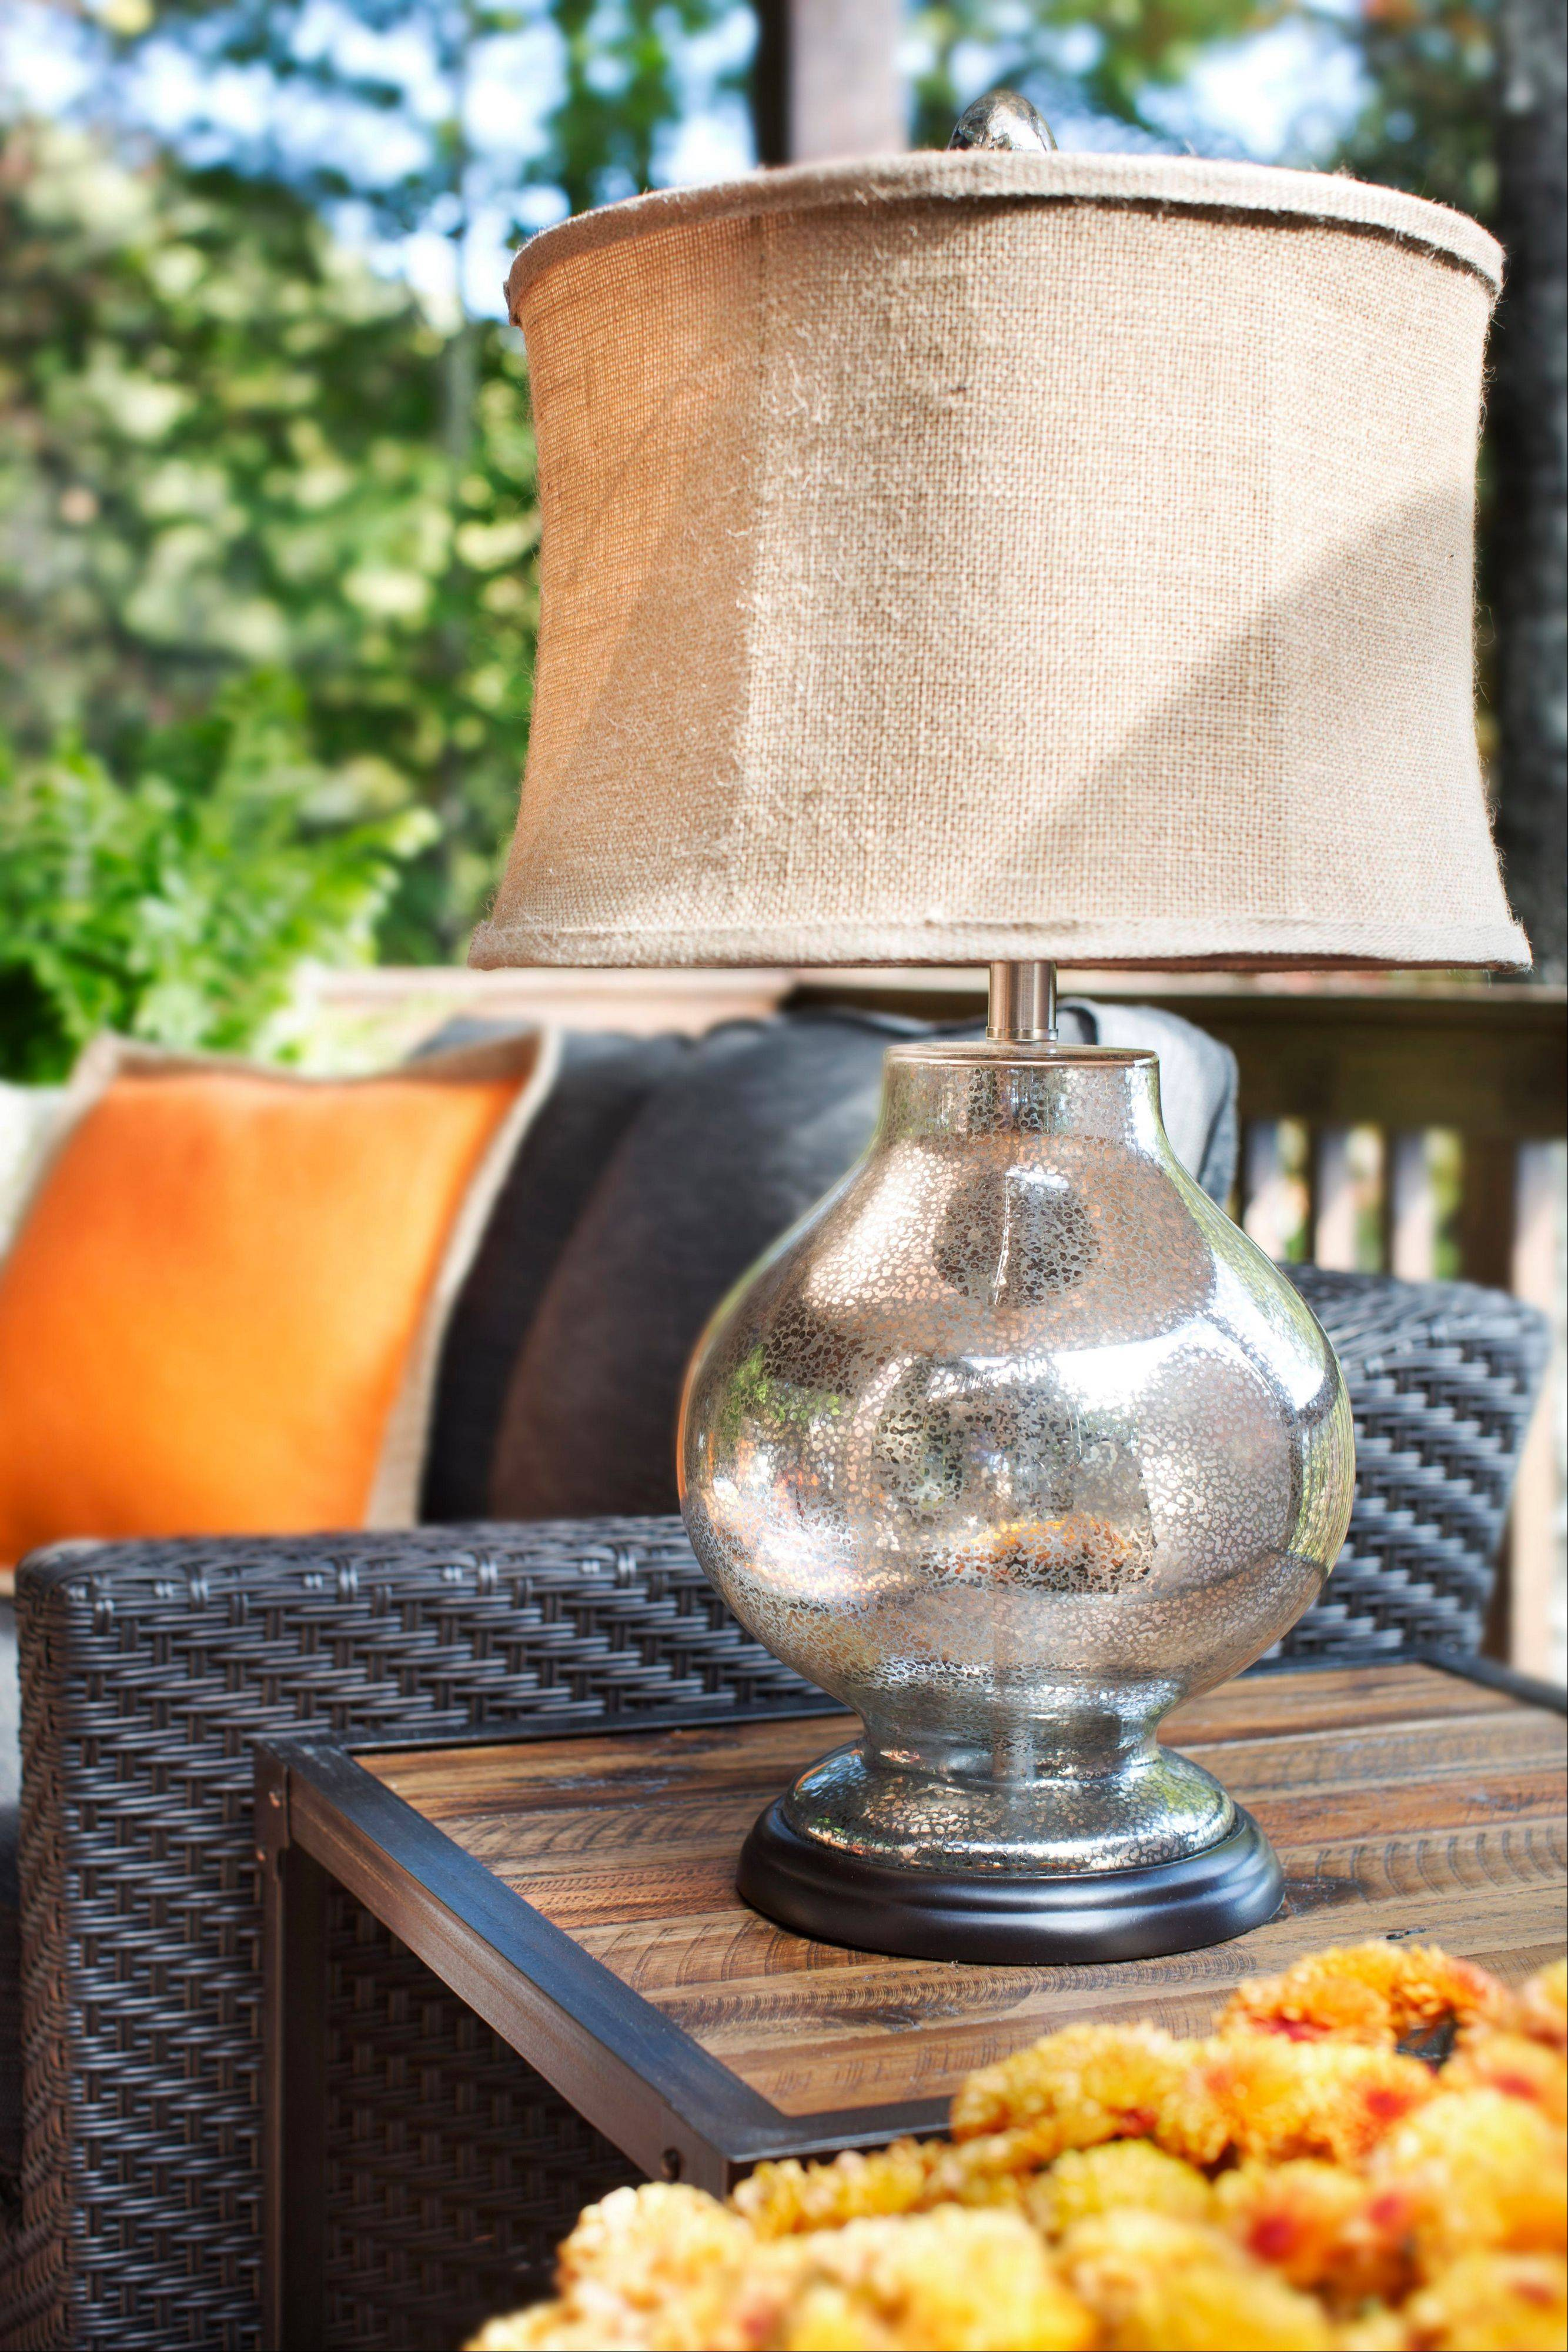 Flynn puts his outdoor table lamps on timers to ensure they're turned off nightly and preserve energy. Flynn also suggests taking textural values into consideration, noting that warm textures like burlap and wood help warm a place up visually.